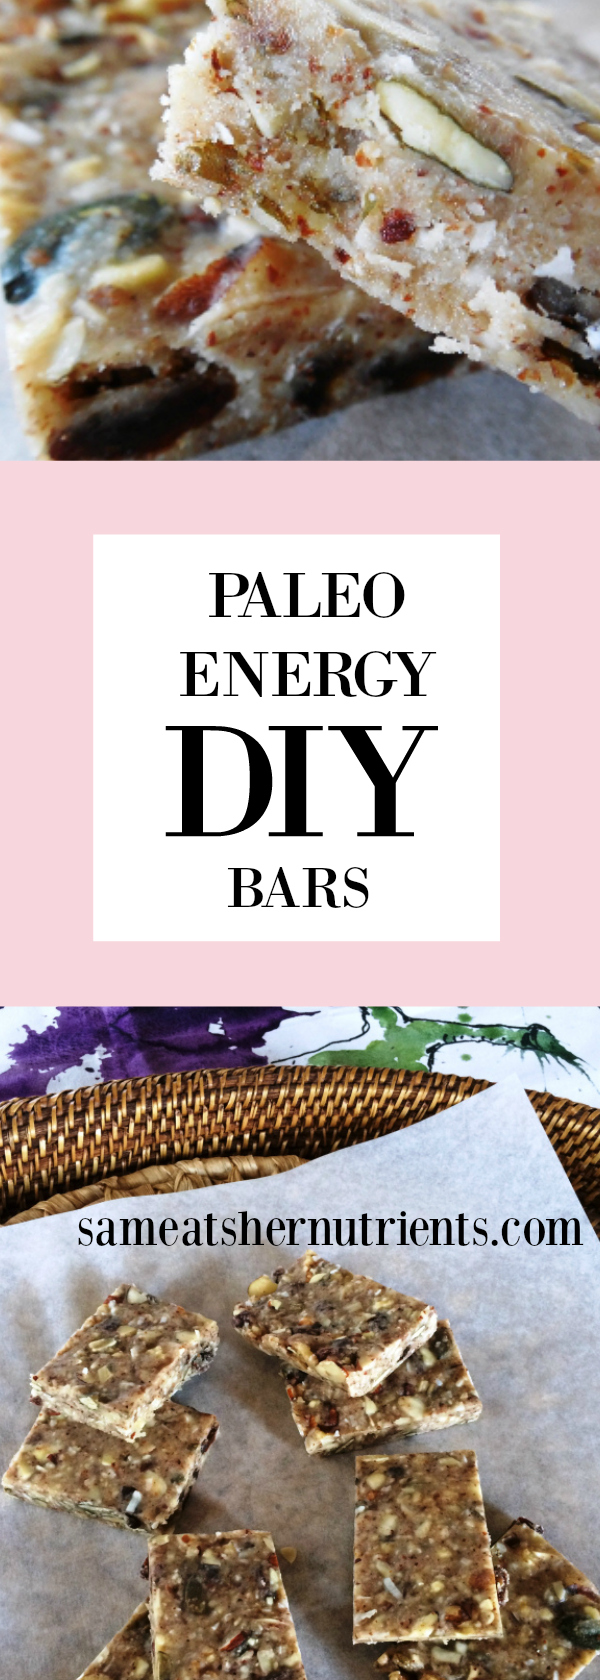 Paleo Energy Bars